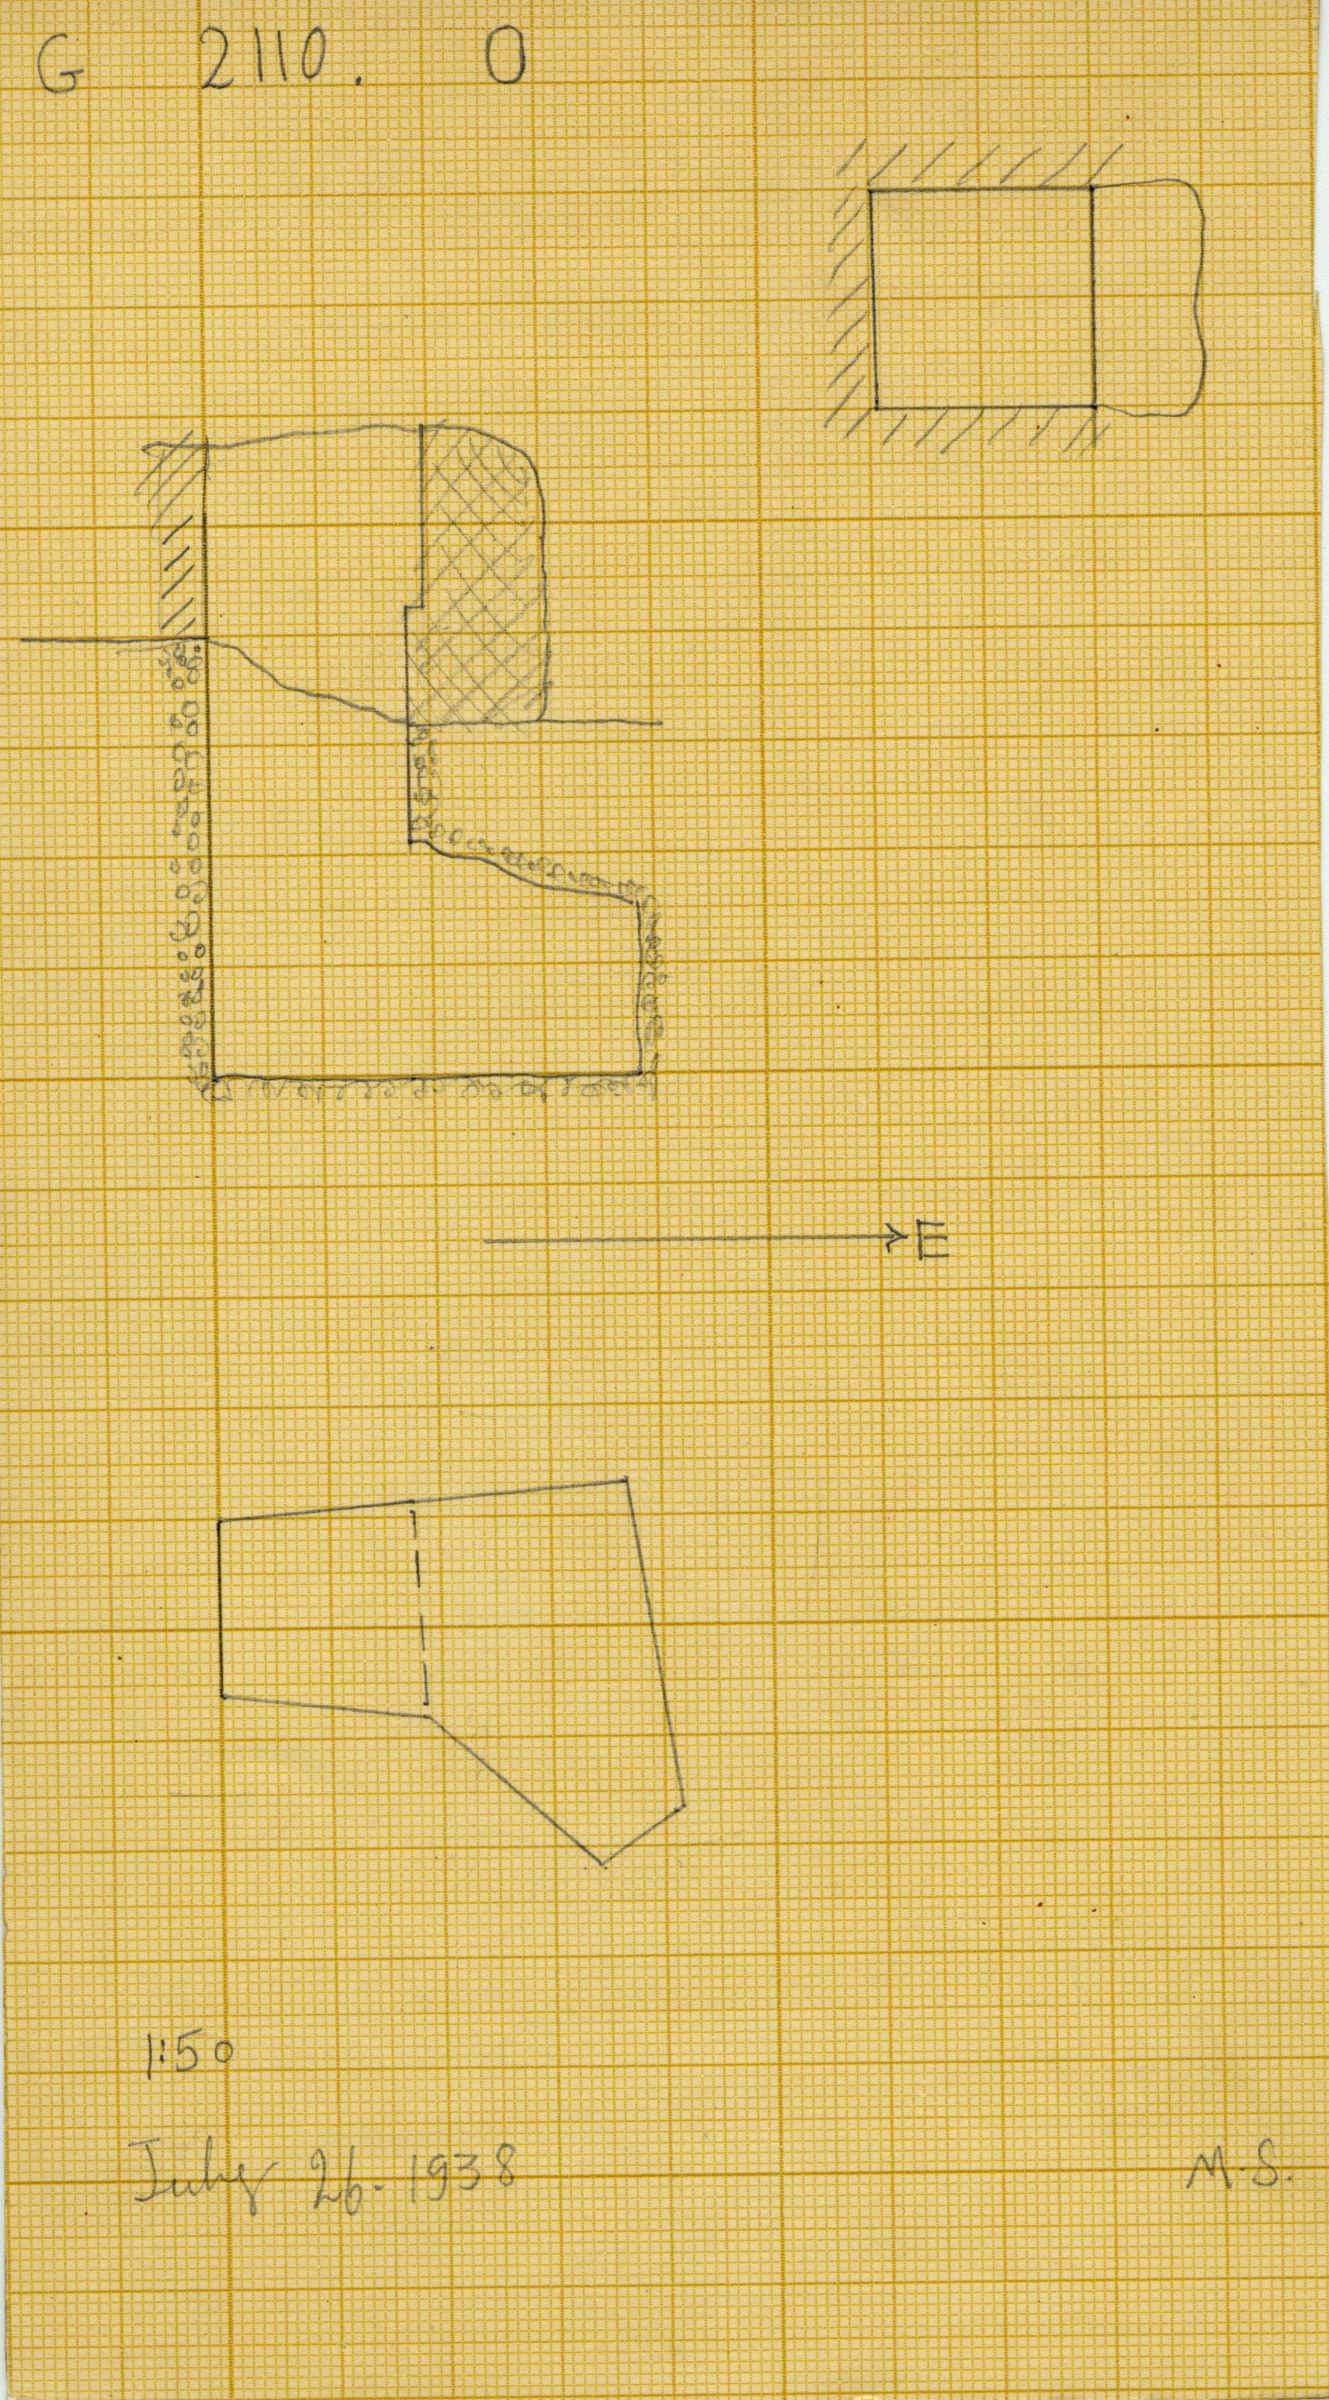 Maps and plans: G 2110, Shaft O